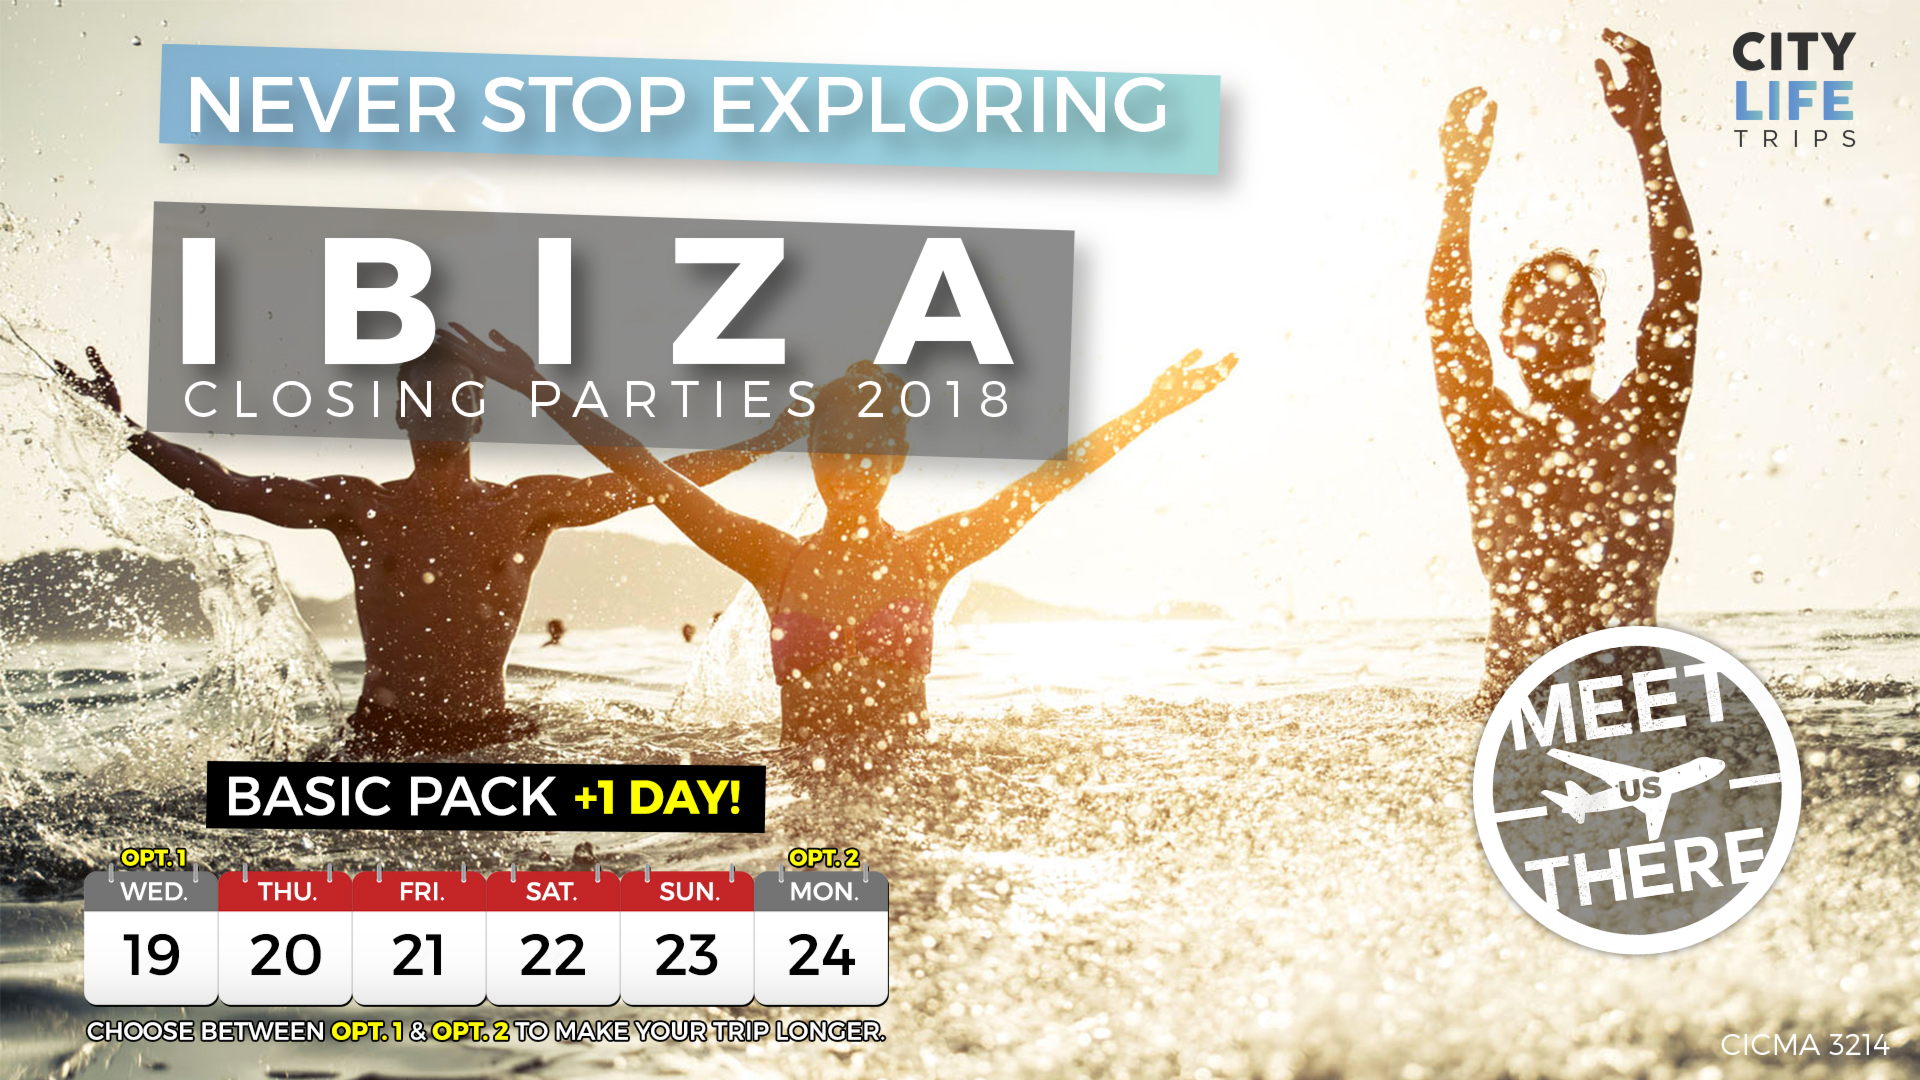 Ibiza - Closing Parties 2018 +1 Extra Day (Meet us There)